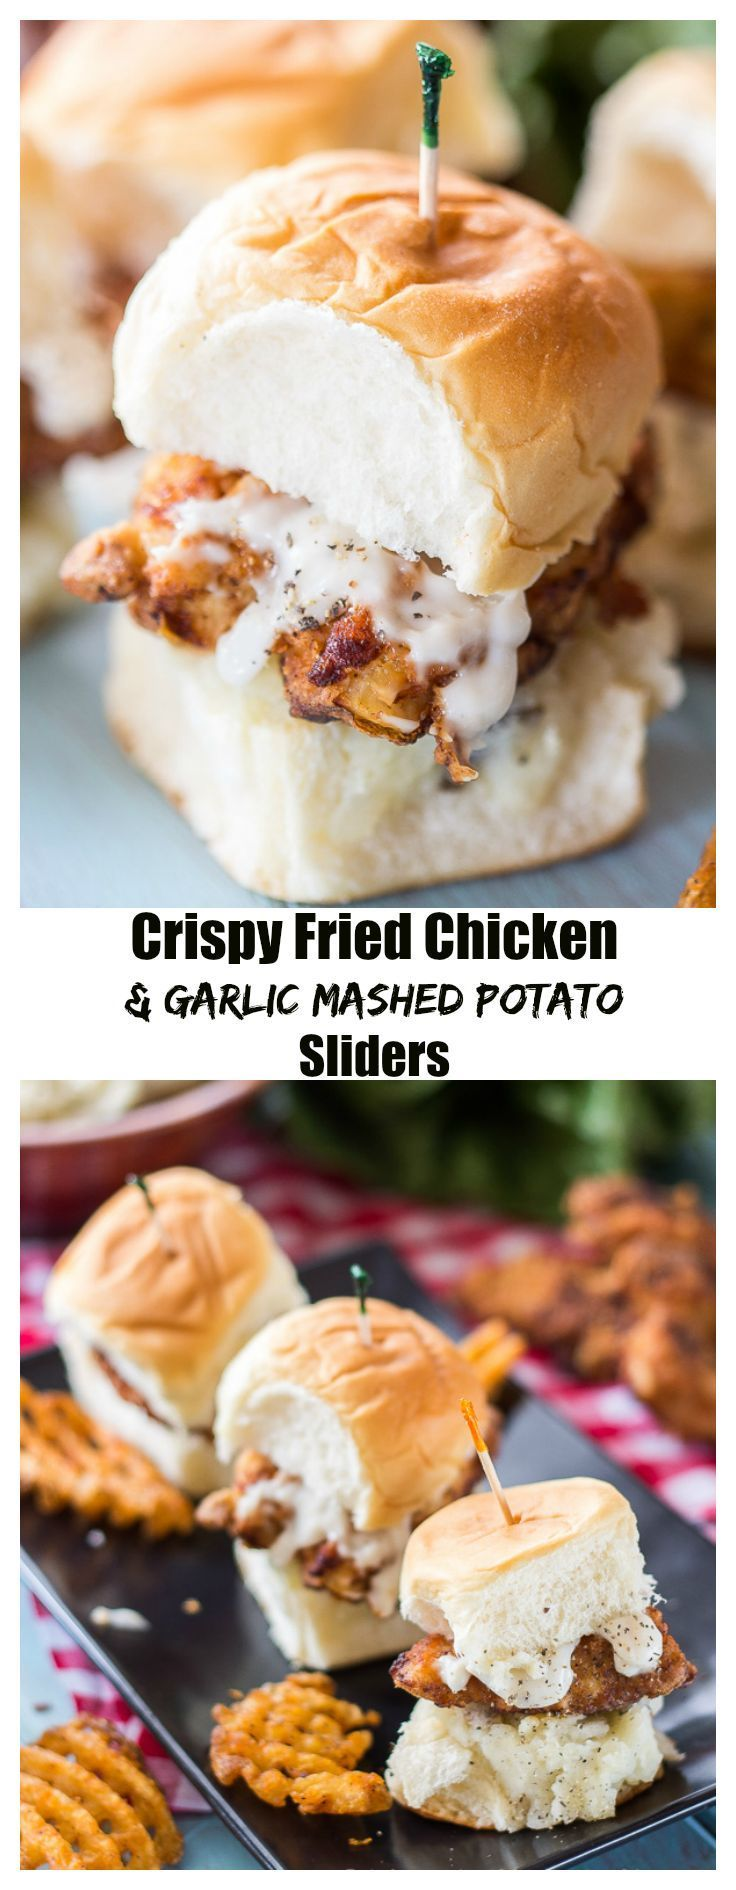 These Fried Chicken Sliders are the perfect summer party food. Garlicy mashed potatoes, crispy fried chicken, and creamy pepper gravy are piled high atop a toasted King's Hawaiian Slider Bun.